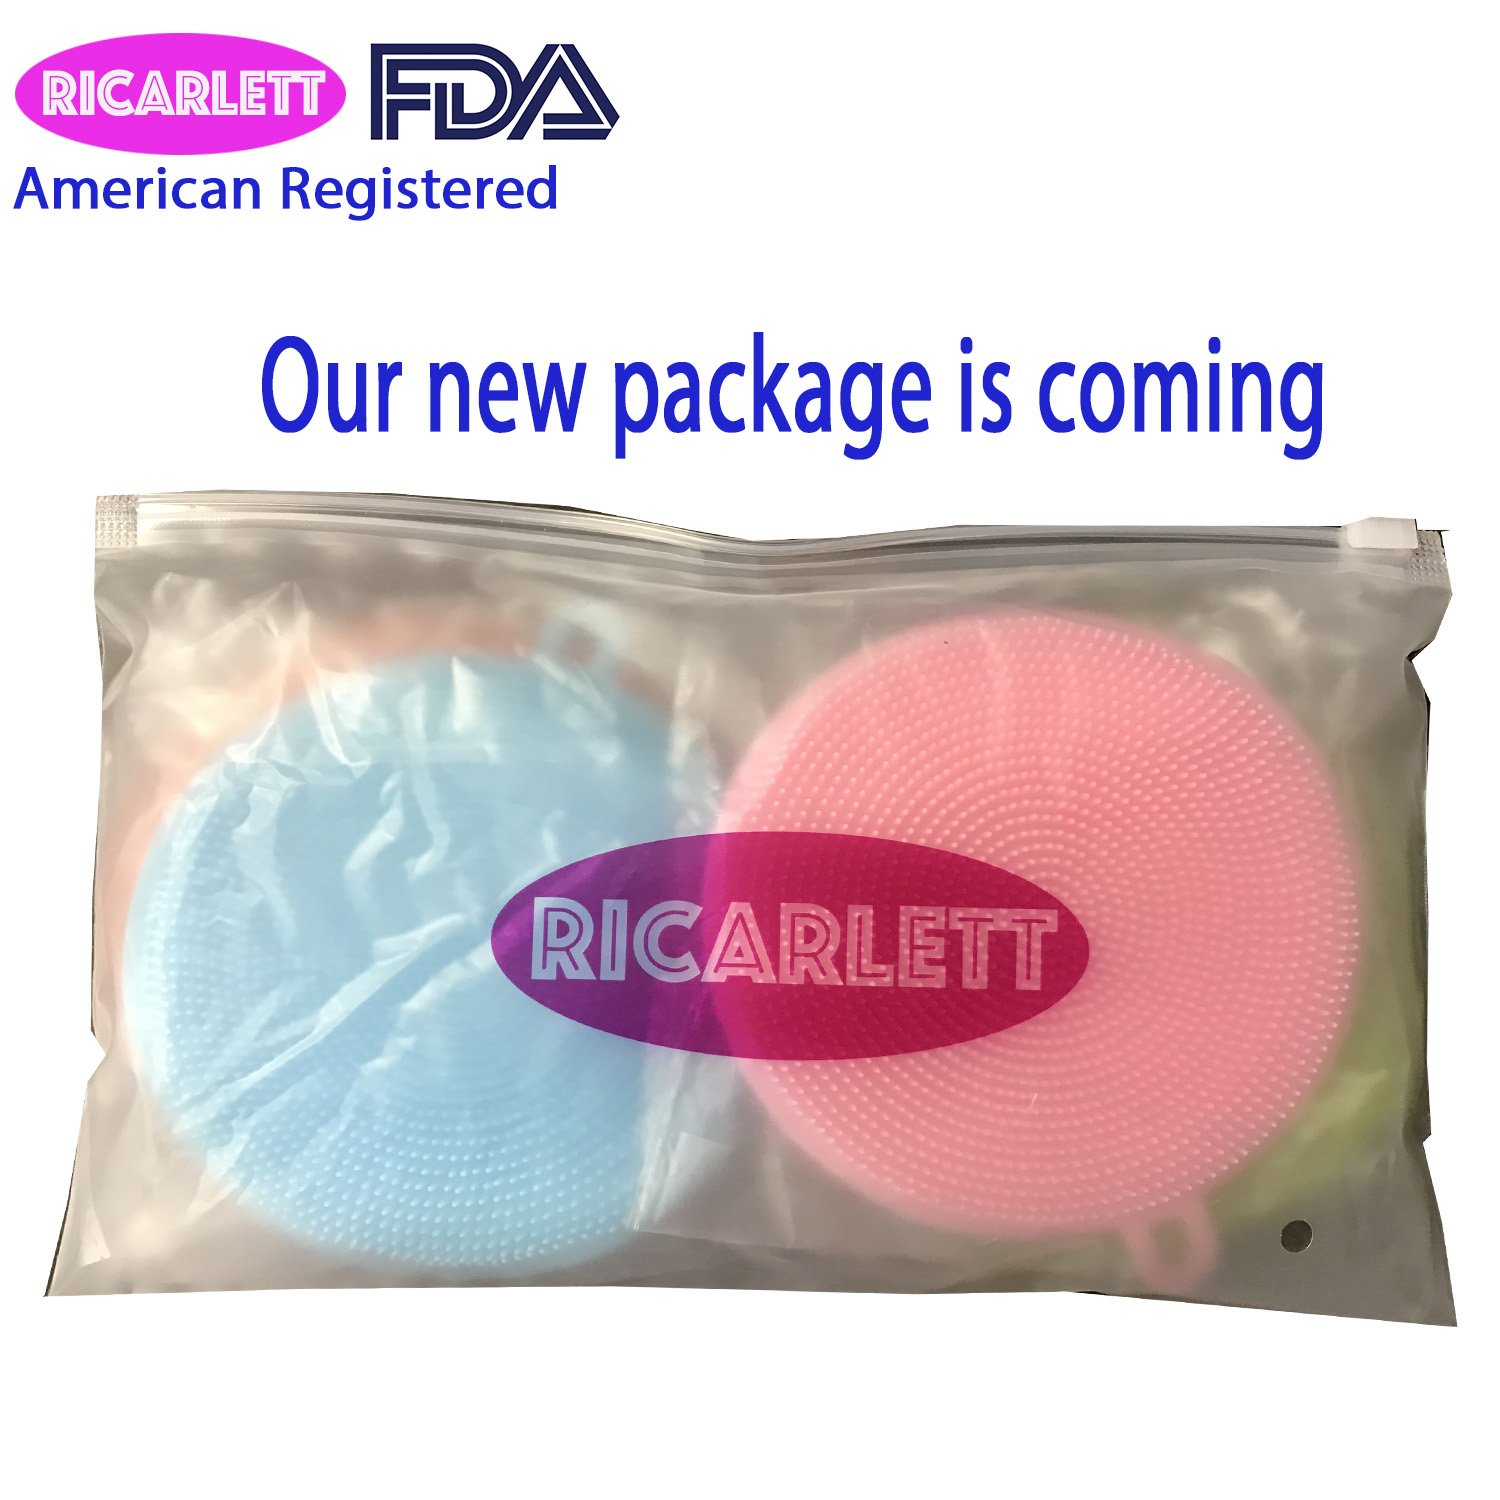 Silicone Non Sick All Purpose Dish Brush Sponge Towel Scrubber For Kitchen Wash Dish Wash Makeup Brush Wash Body Wash Face Wash Fruit and Vegetable Wash Package of 4 Ricarlett